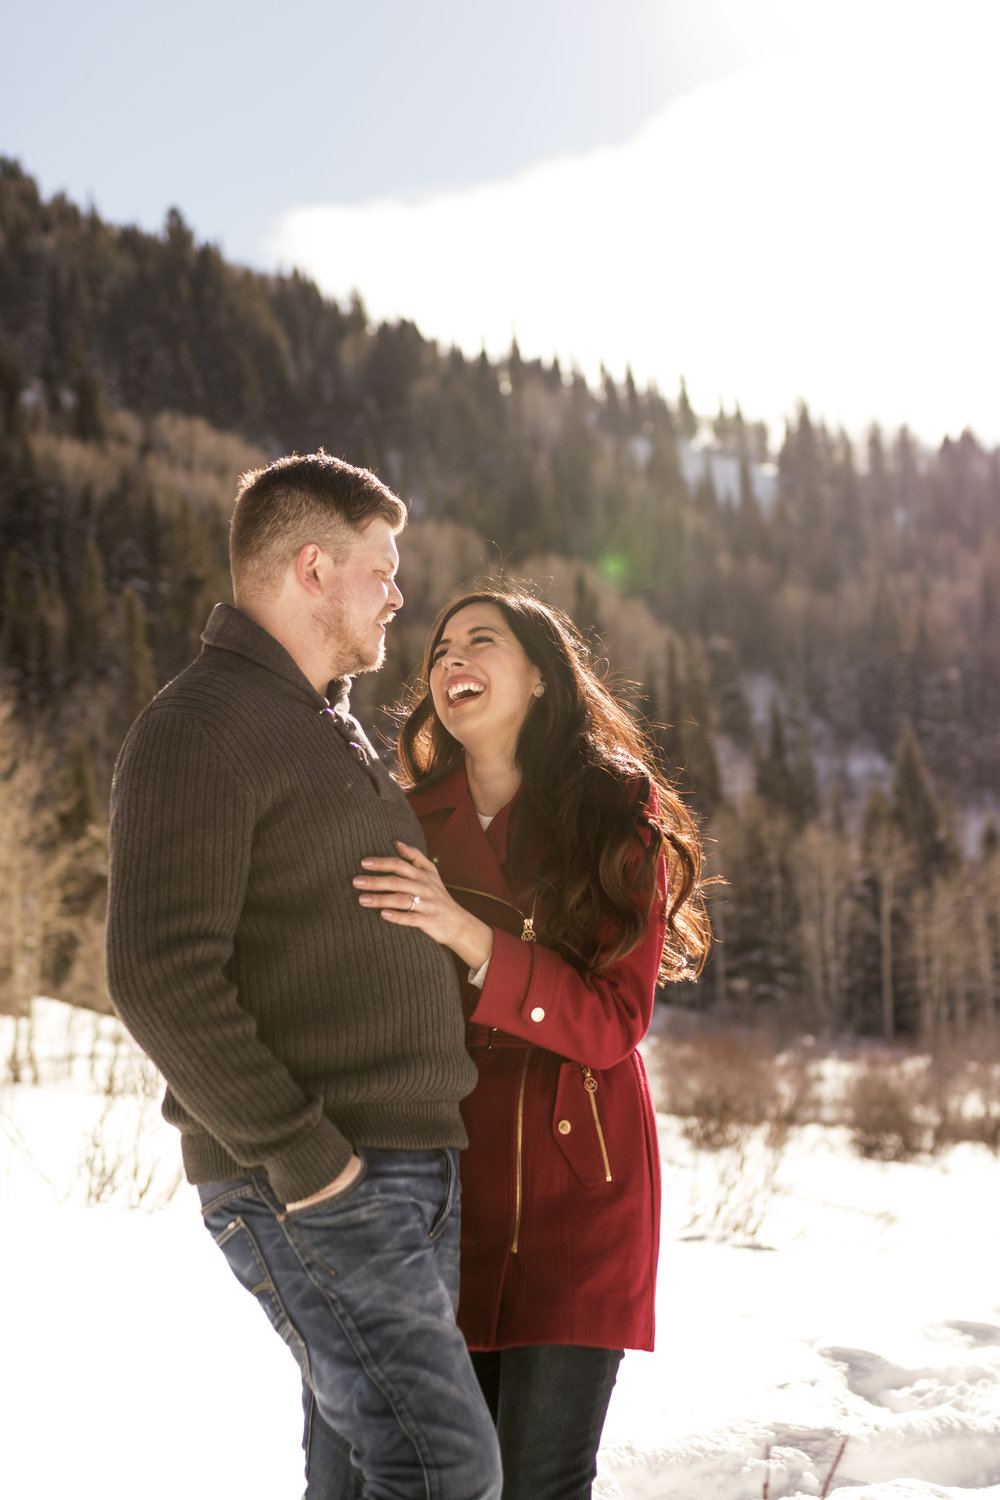 Snowey Utah Winter Engagements in Little Cottonwood Canyon by Bri Bergman Photography07.jpg